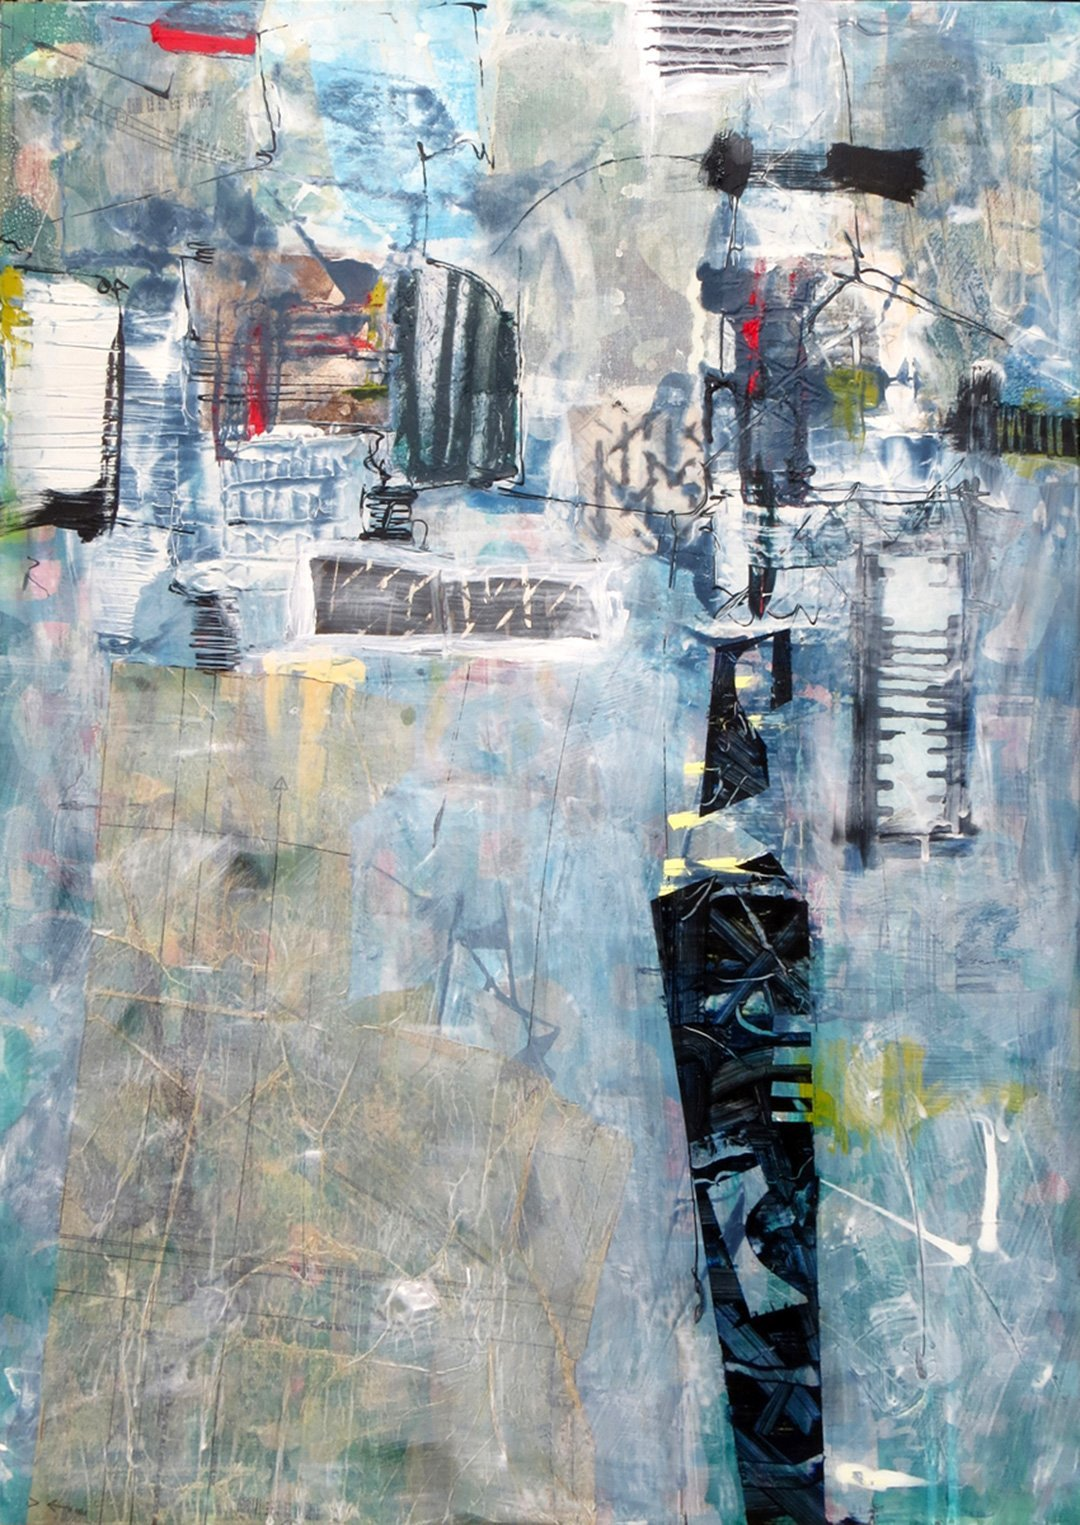 Steve Tomlin | As we sailed away from the quay